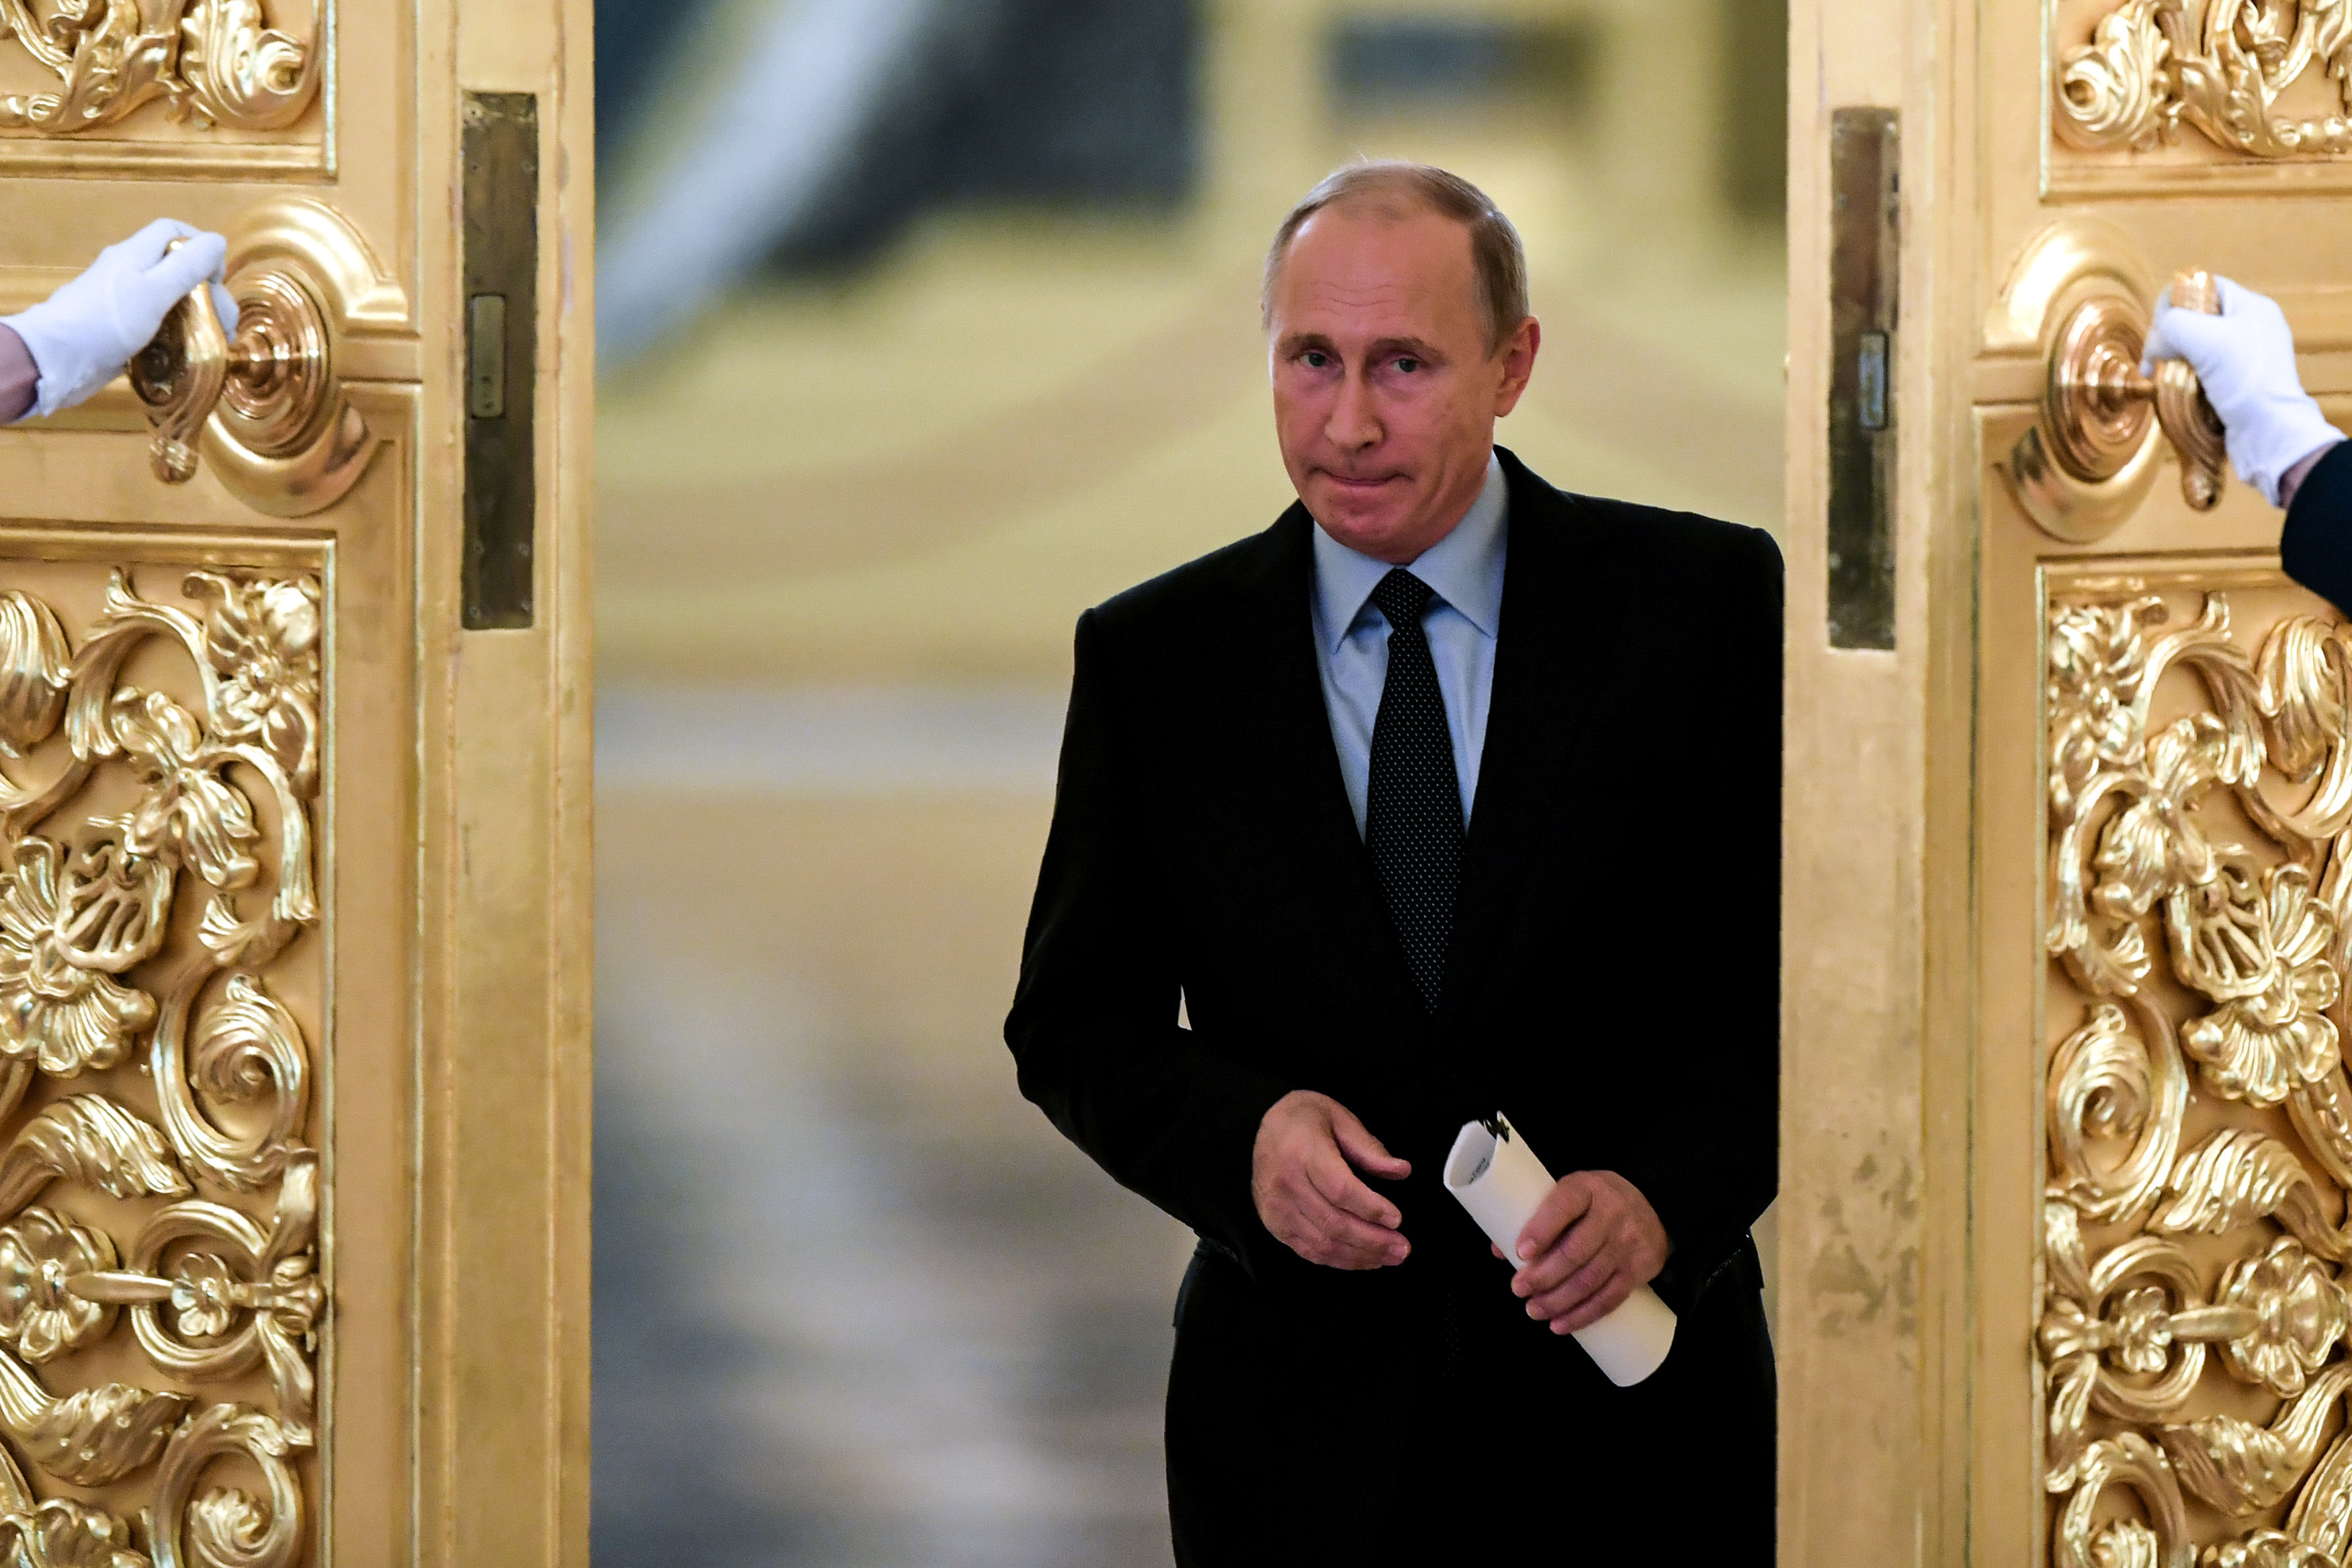 Russian President Vladimir Putin enters a hall to meet with members of the Presidential Council for Civil Society and Human Rights at the Kremlin in Moscow, Russia October 30, 2017